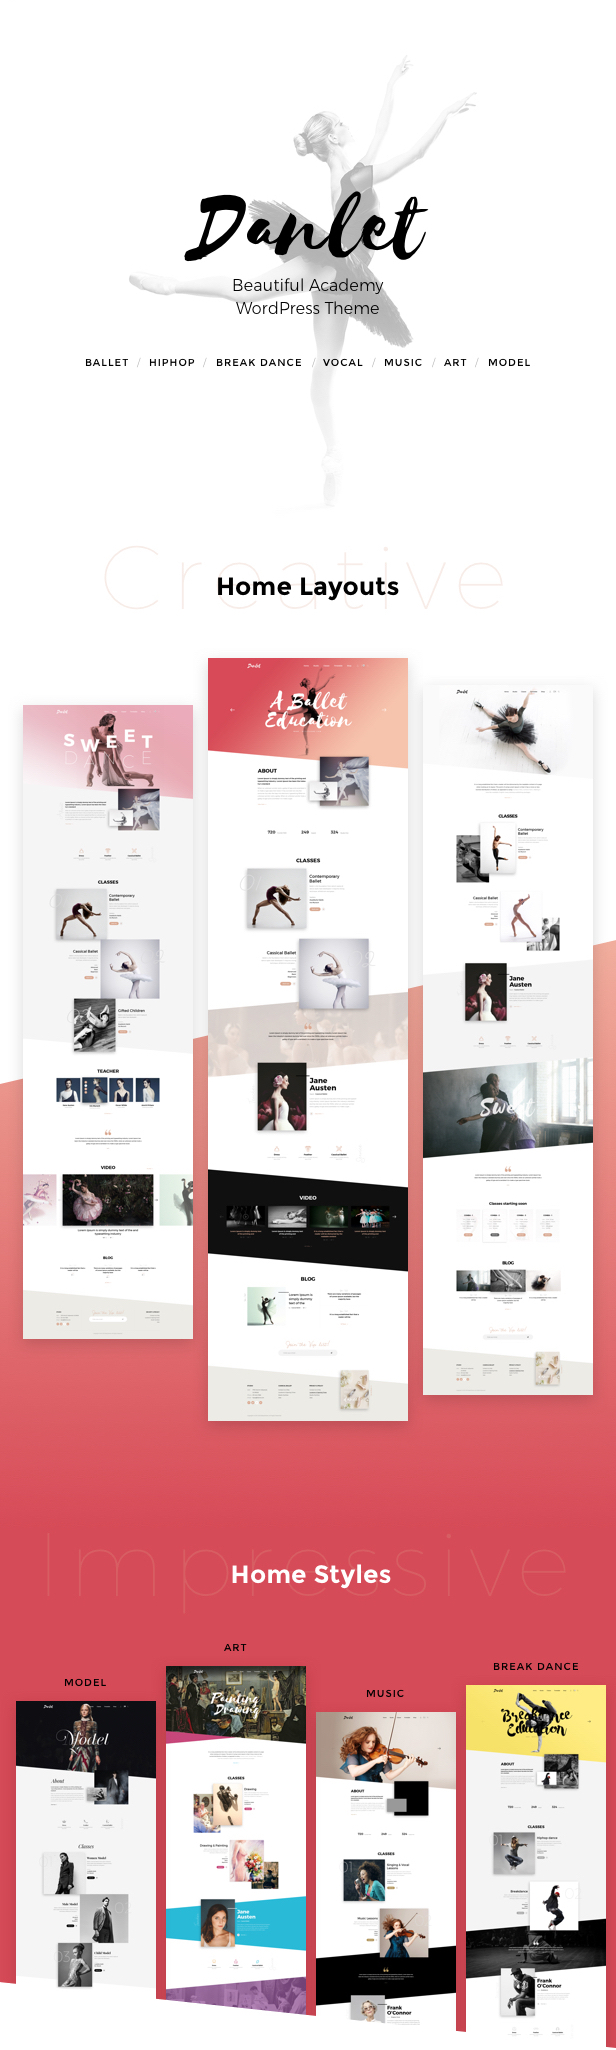 Danlet WordPress Theme